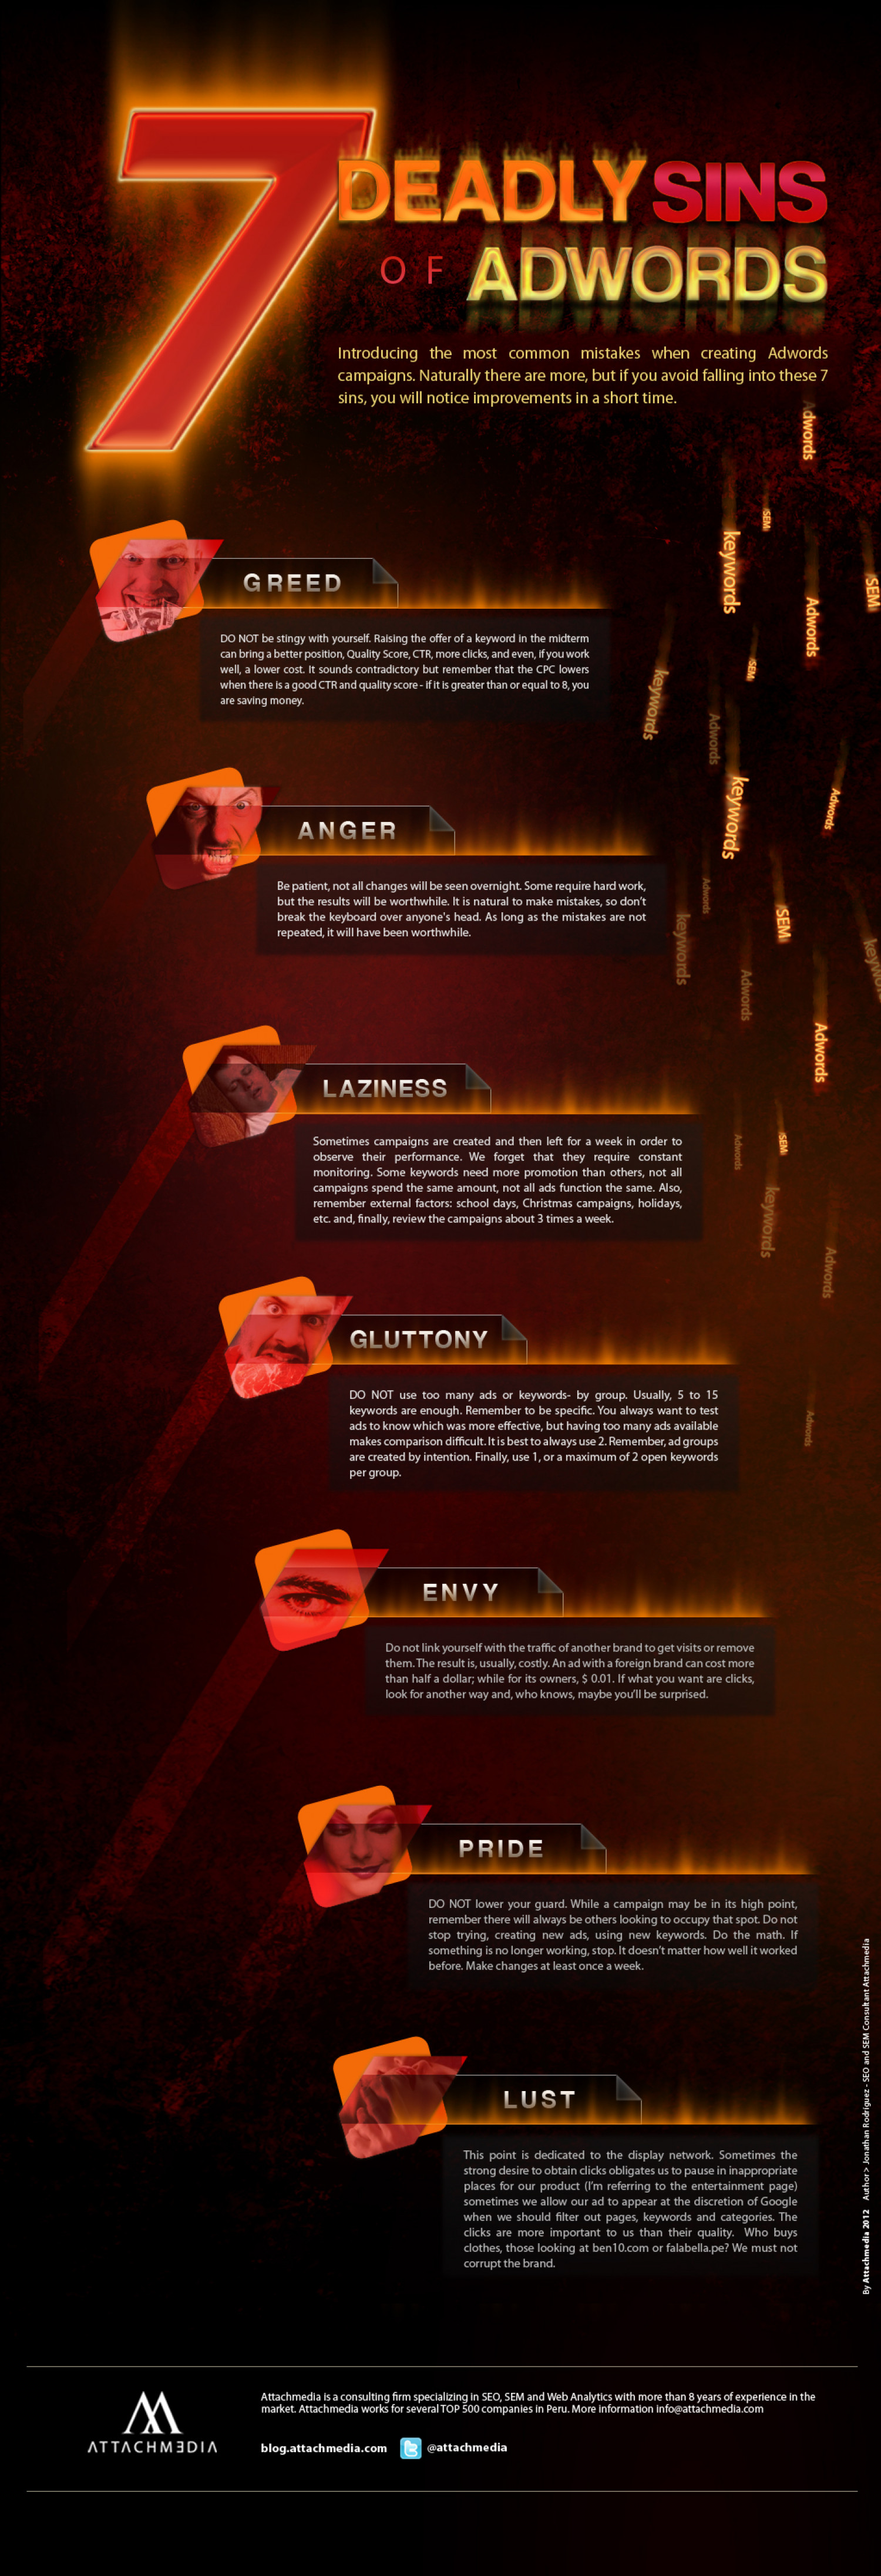 THE 7 DEADLY SINS OF ADWORDS Infographic